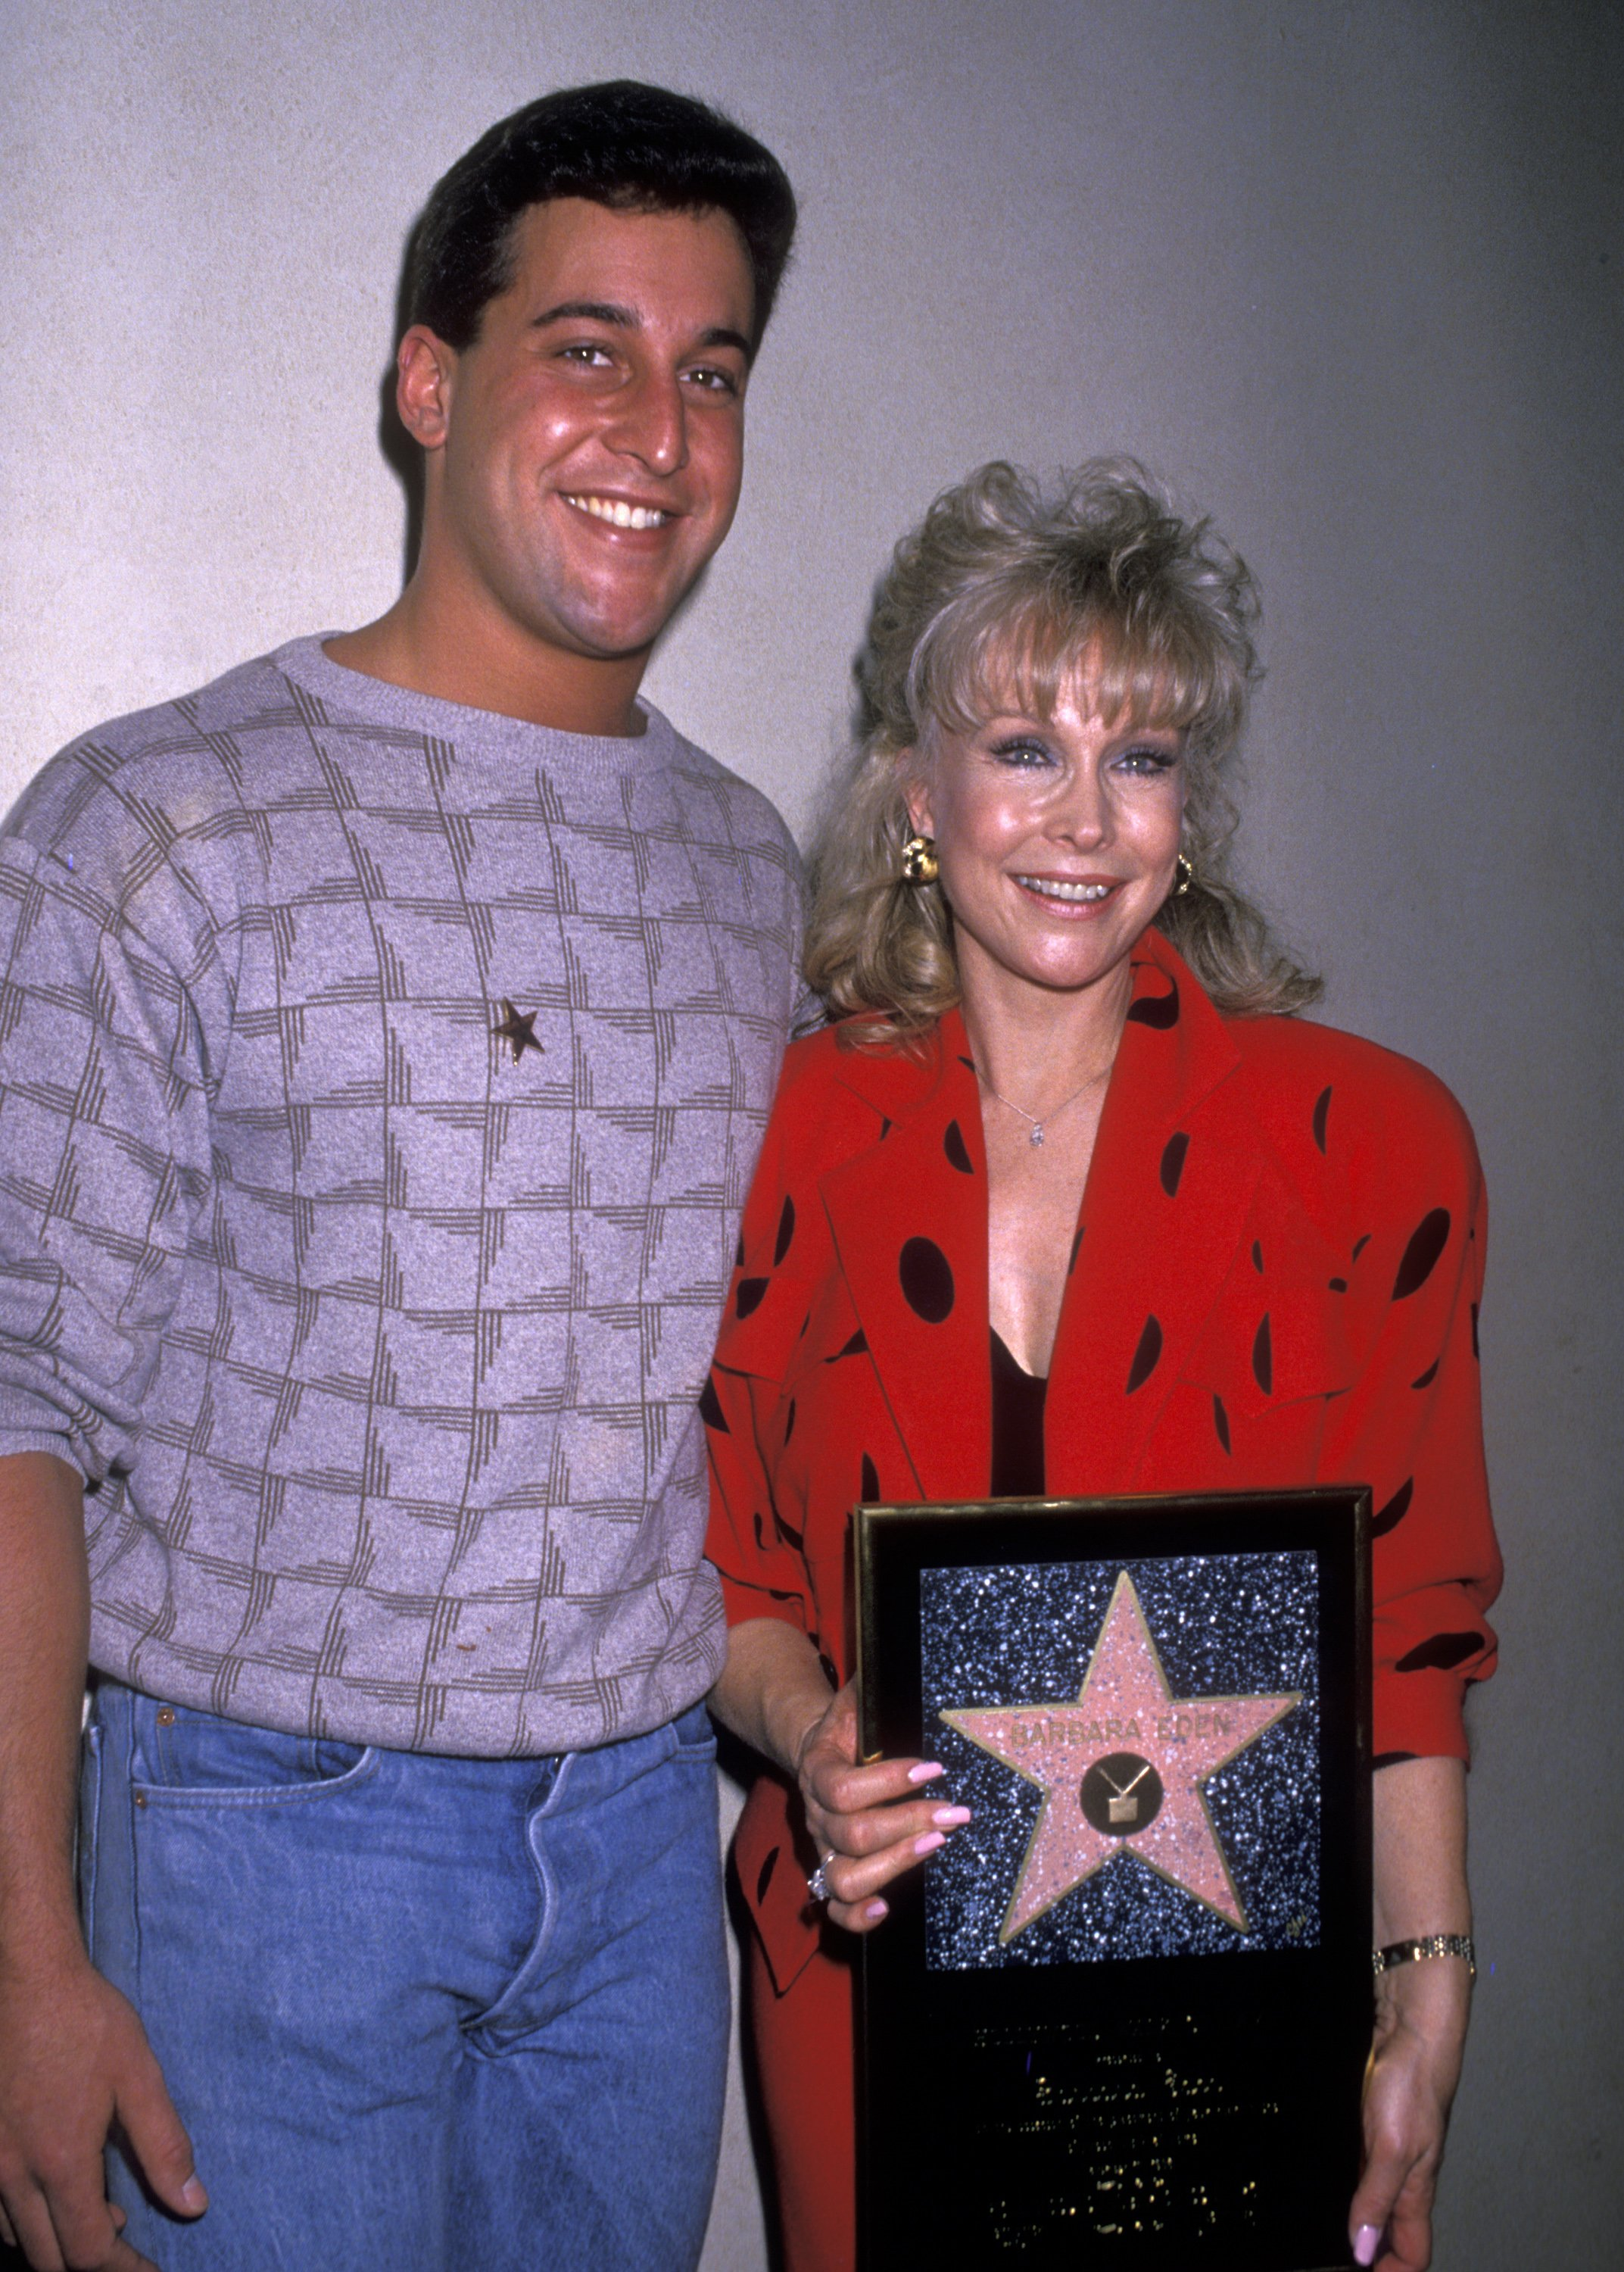 """Actress Barbara Eden and son Matthew Ansara attend the """"Hollywood Walk of Fame Ceremony Honoring Barbara Eden with a Star"""" on November 17, 1988 at 7003 Hollywood Boulevard in Hollywood, California.